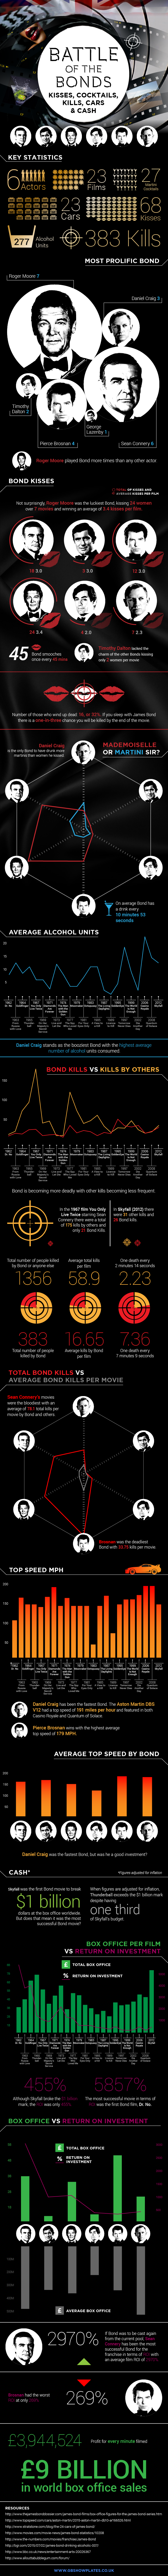 James Bond 007 Infographic - Battle of the Bonds: Kisses, Cocktails, Kills, Cars & Cash